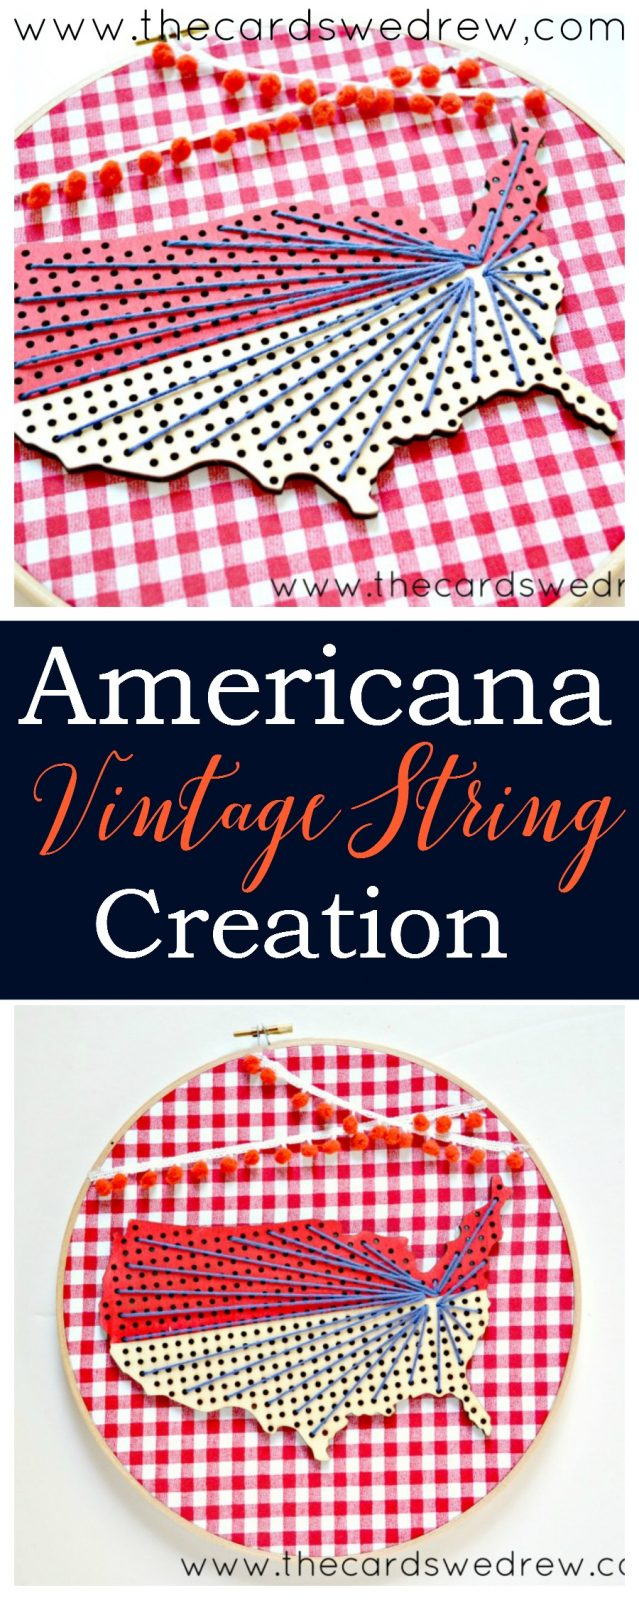 Americana Vintage String Creation from The Cards We Drew